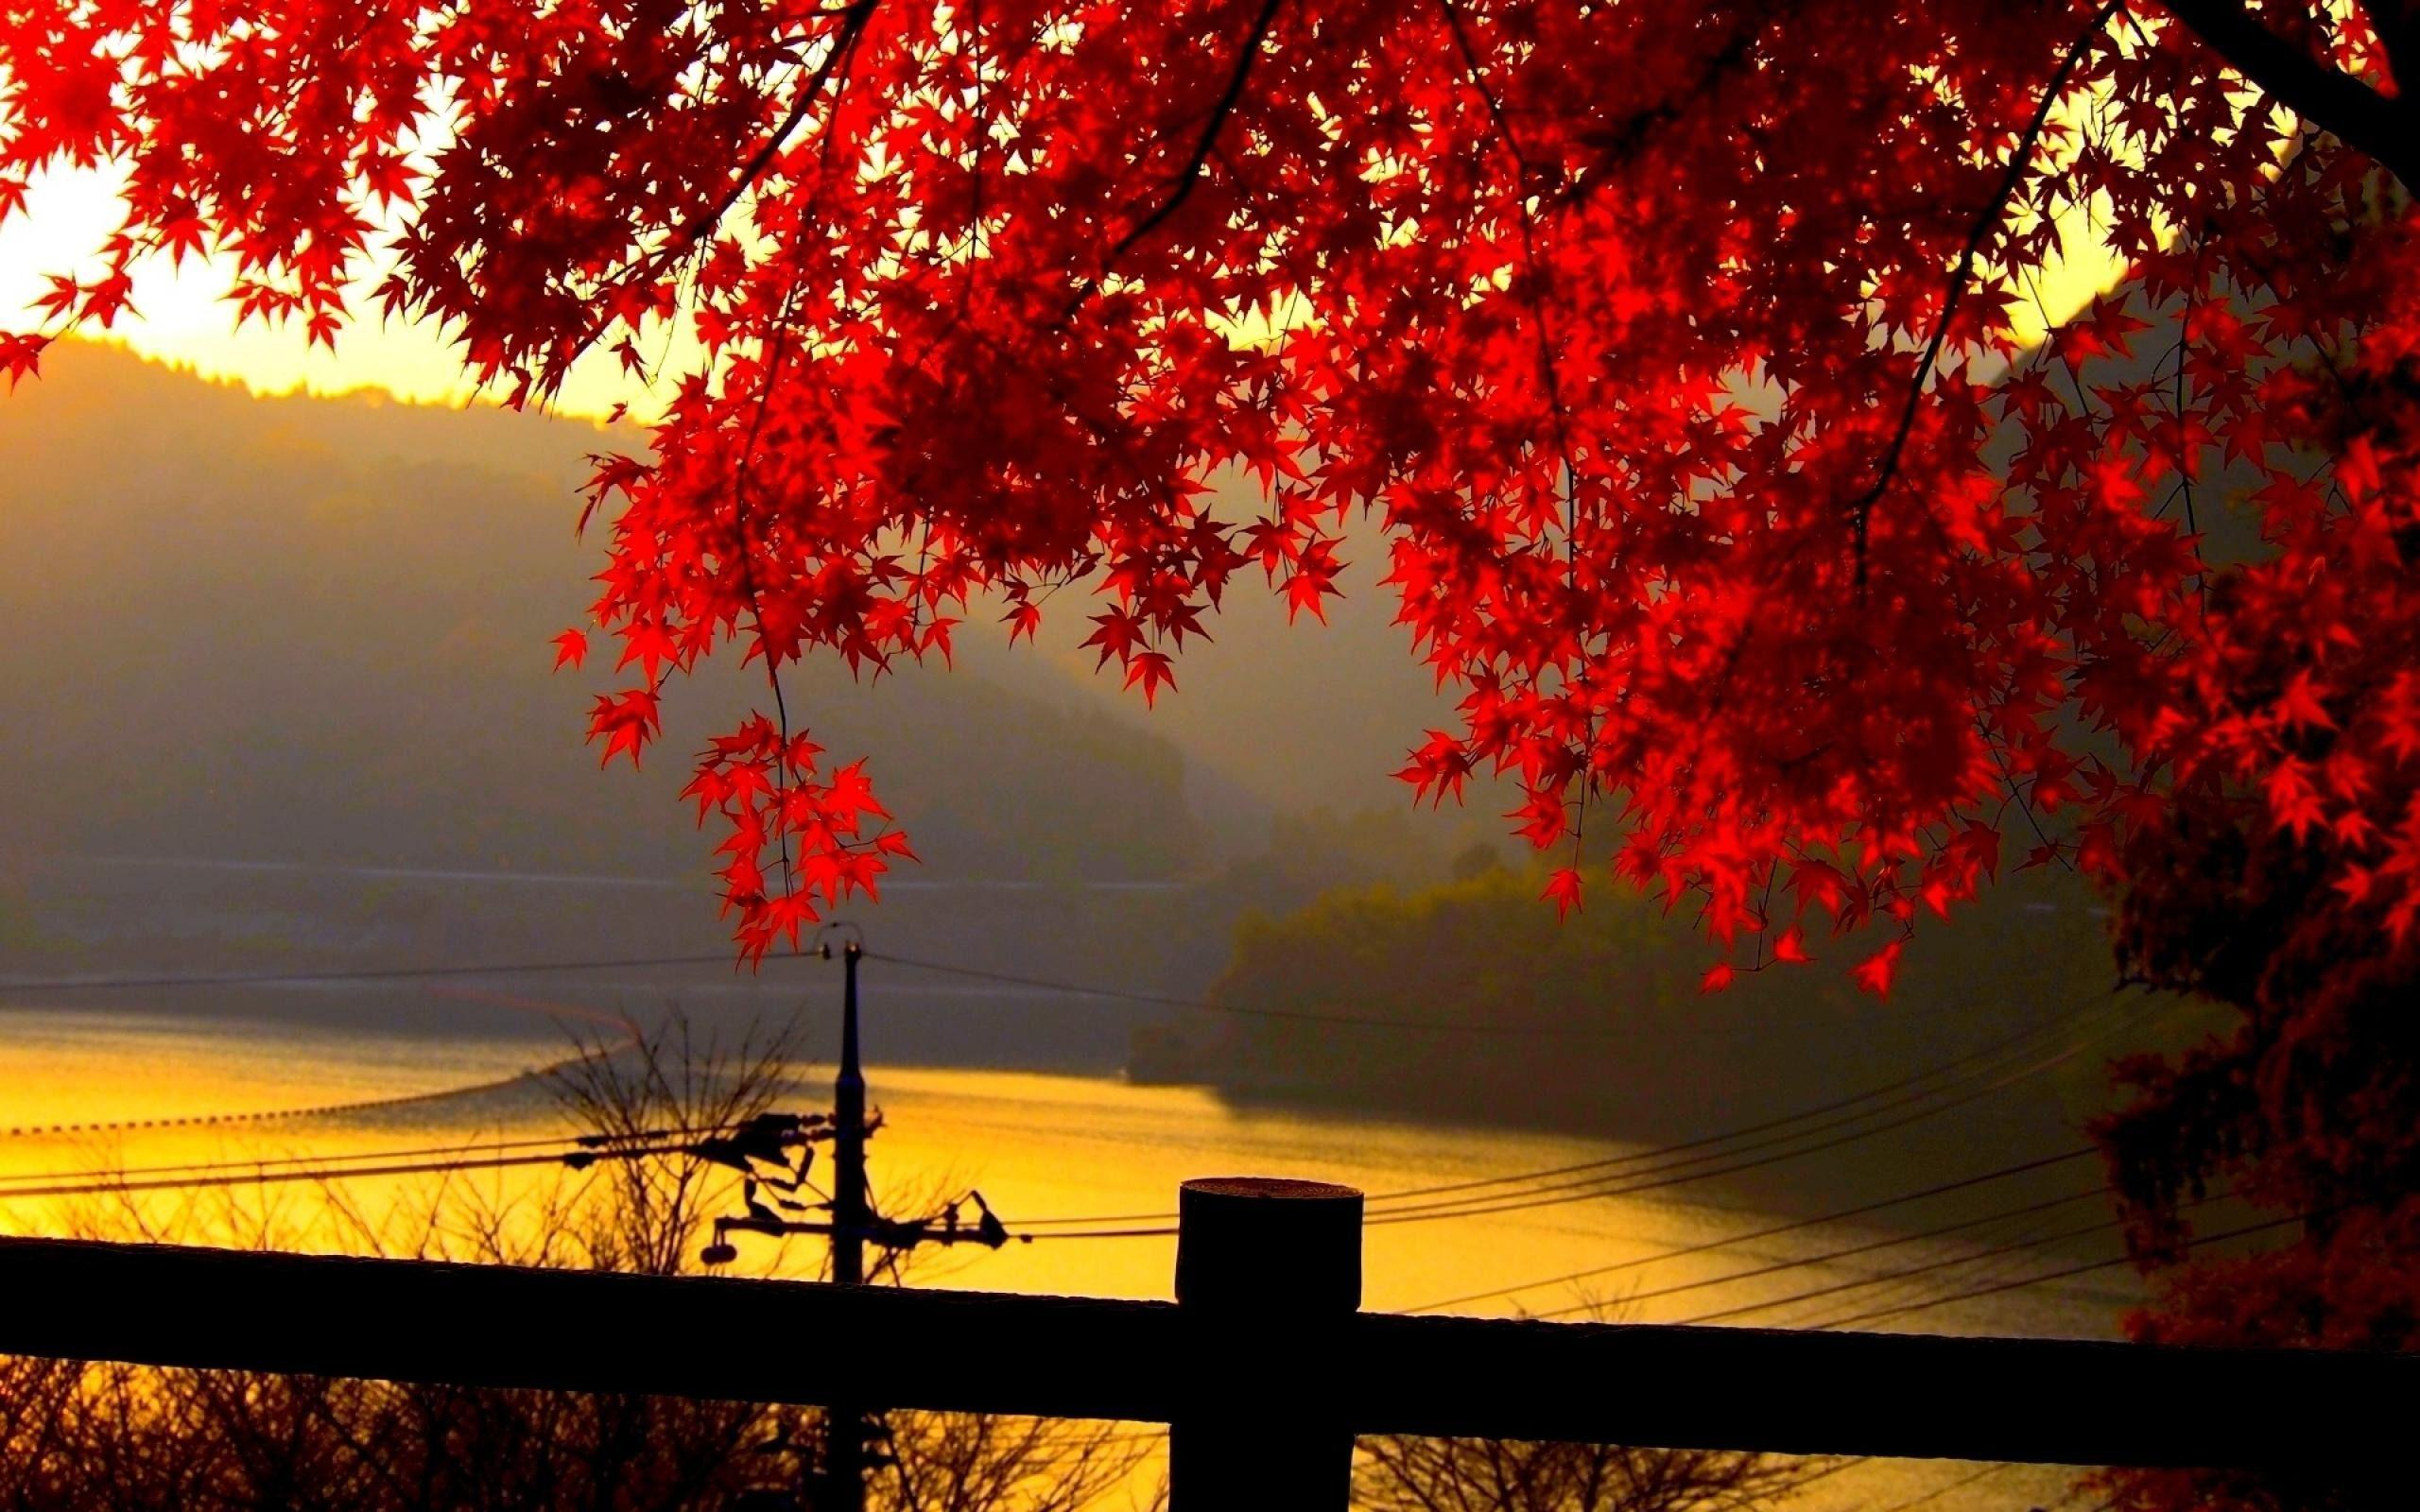 landscape autumn hd wallpaper - photo #2